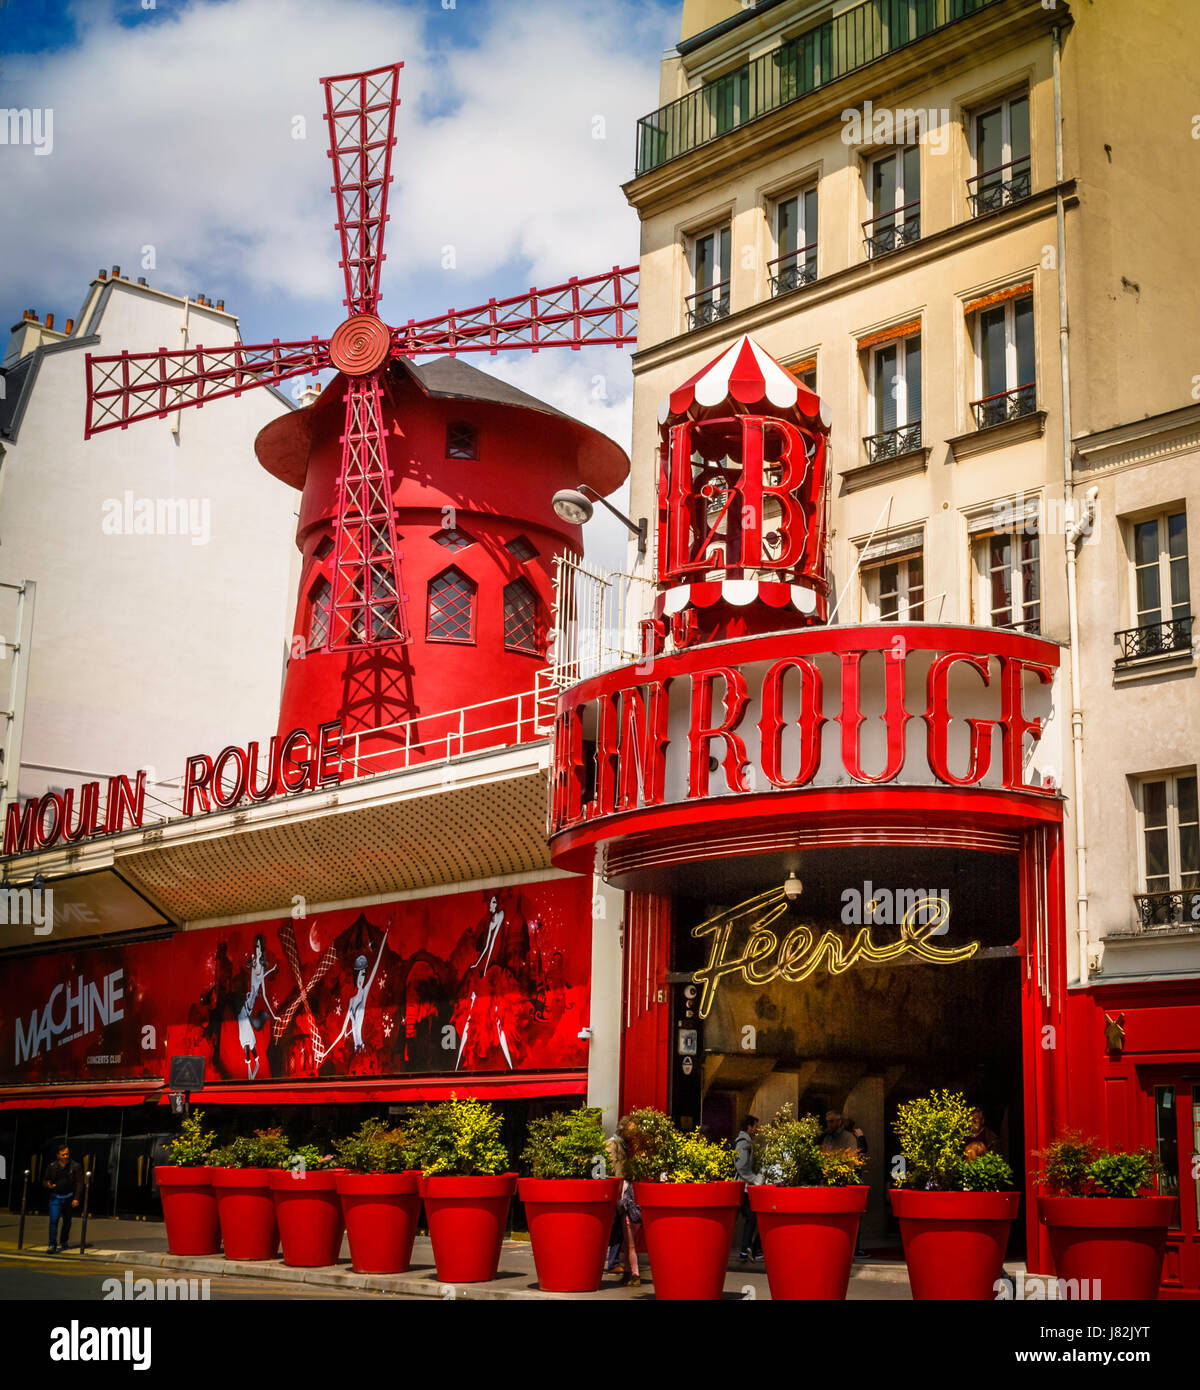 Le Moulin Rouge is a famous night club cabaret in Paris. The original Moulin opened in 1889, burned down in 1915, - Stock Image